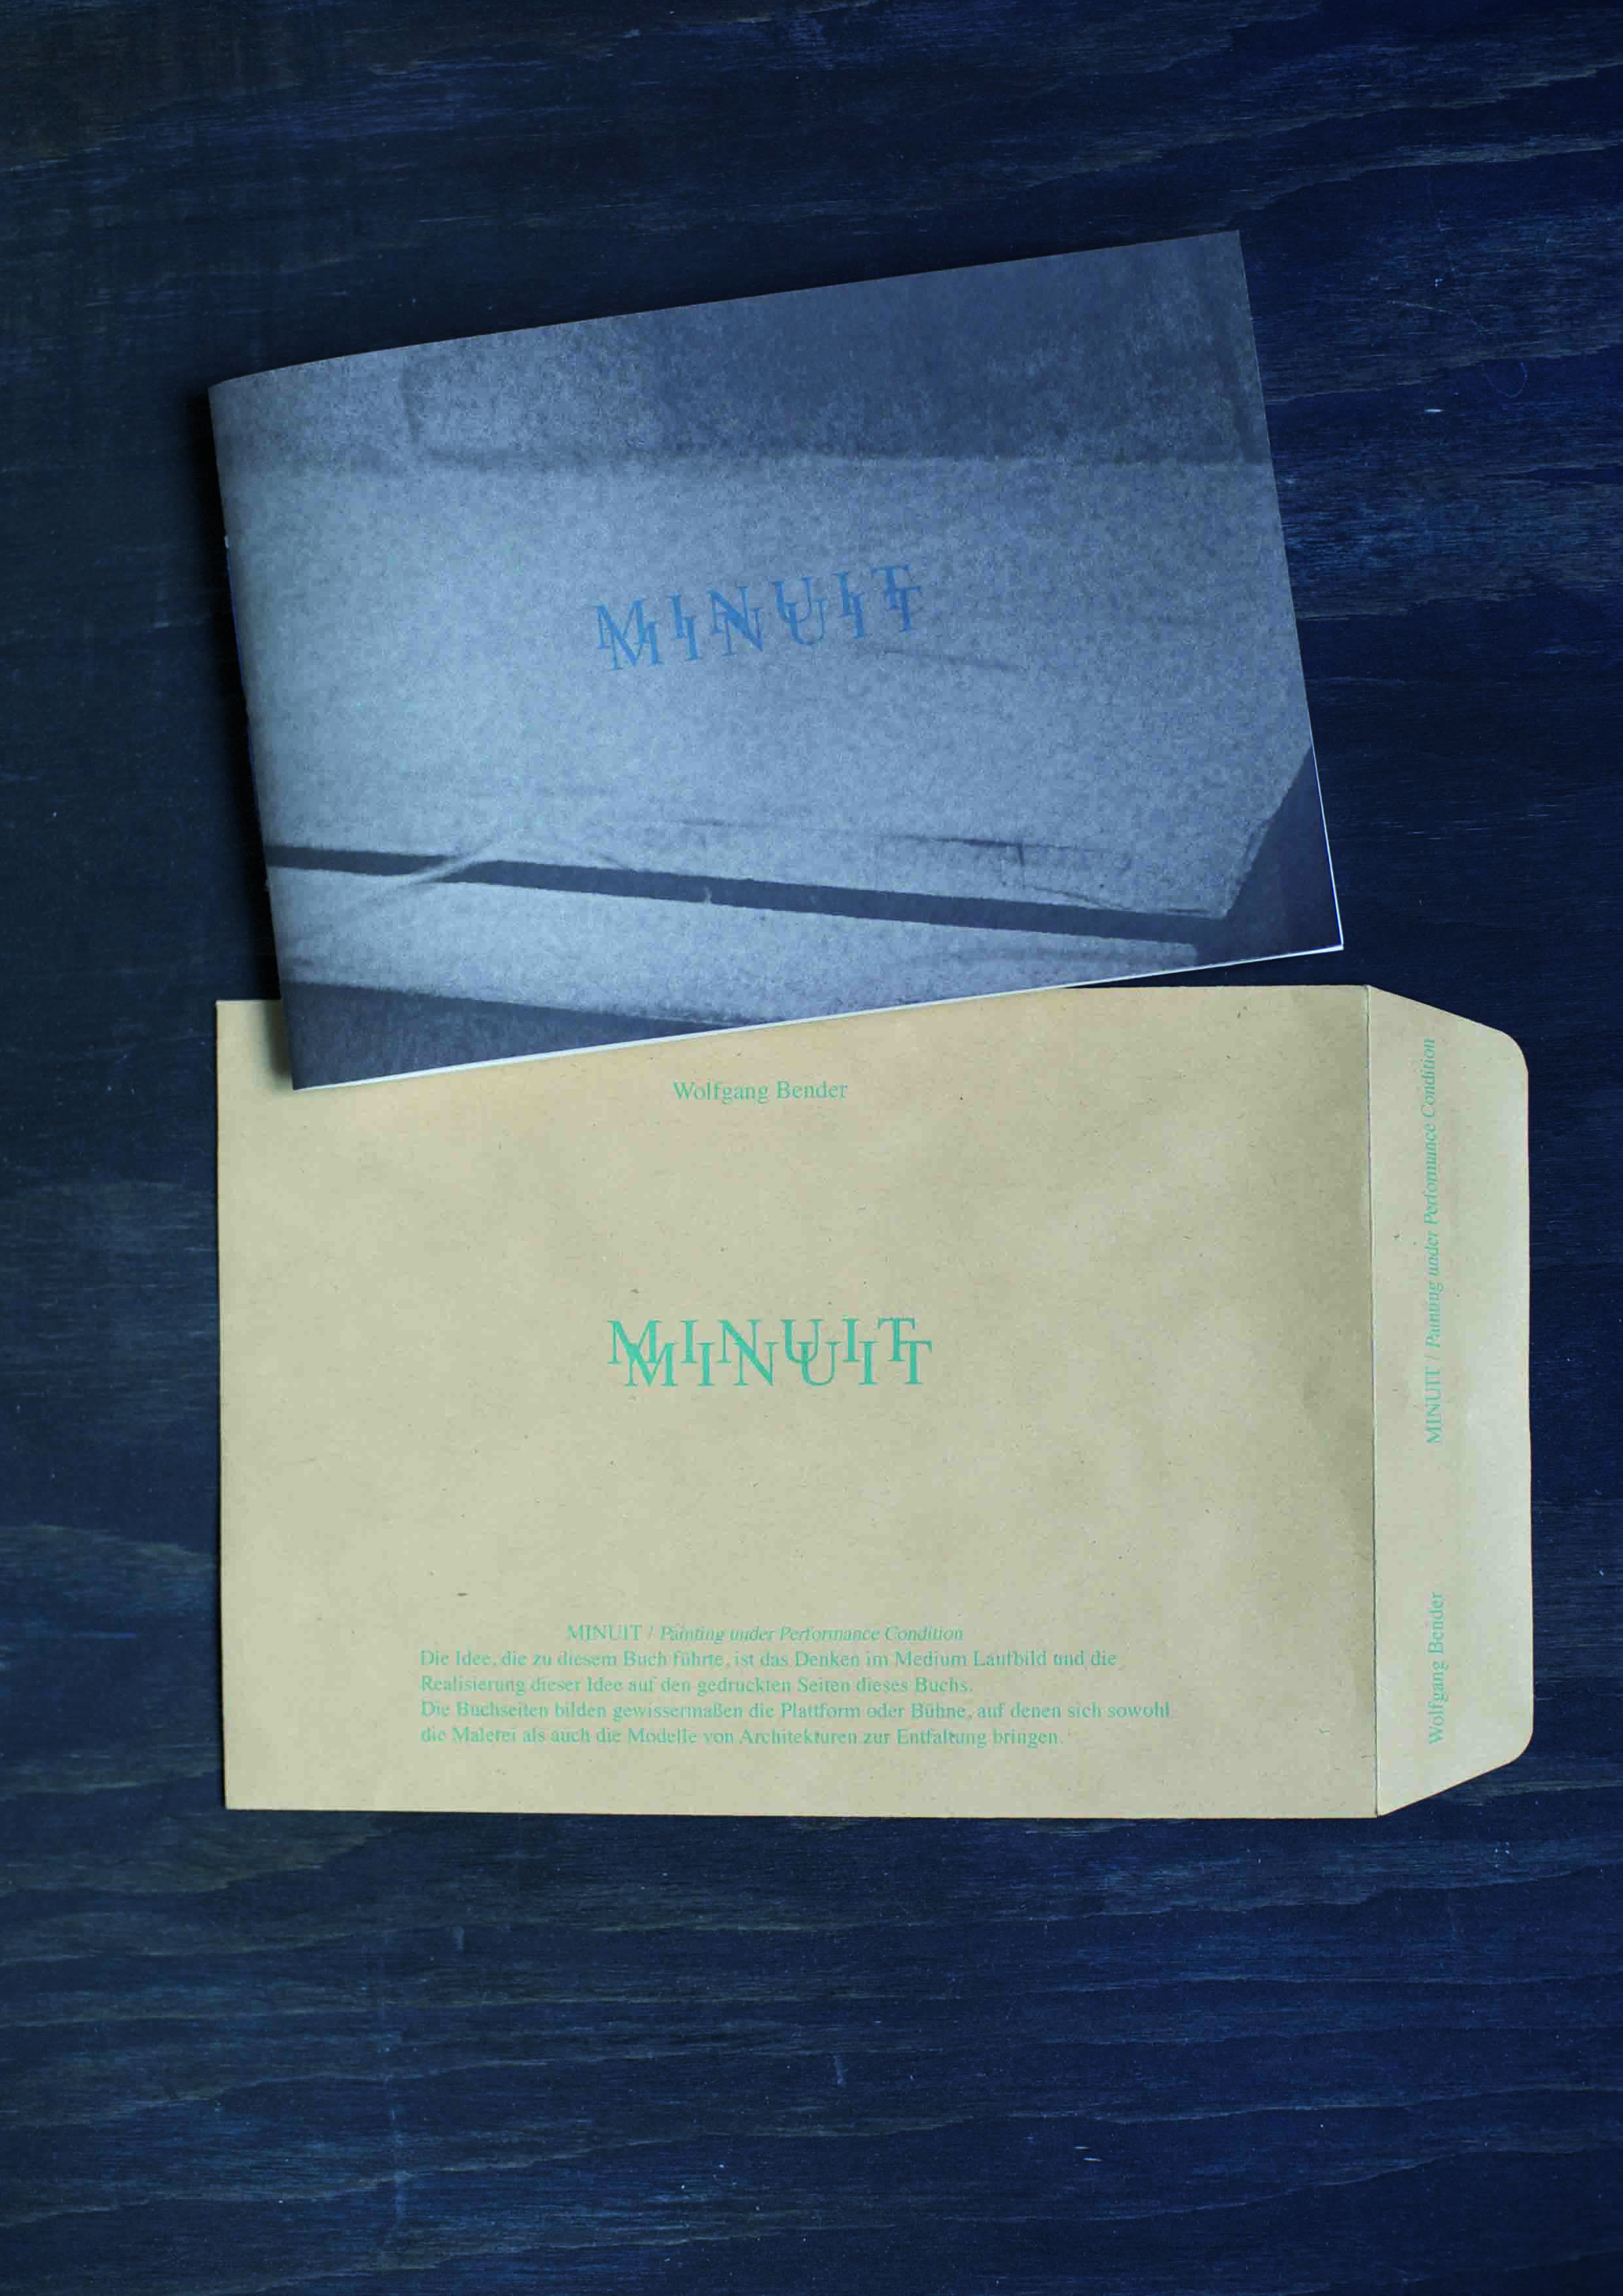 MINUIT, Artist Book, self publishing, pigmented ink on Hahnemühle Nostalgie 190gr., hand binding, envelope, Vienna, August 2015    PHOTOGRAPHS:  lambda C-print,  70 x 105 cm